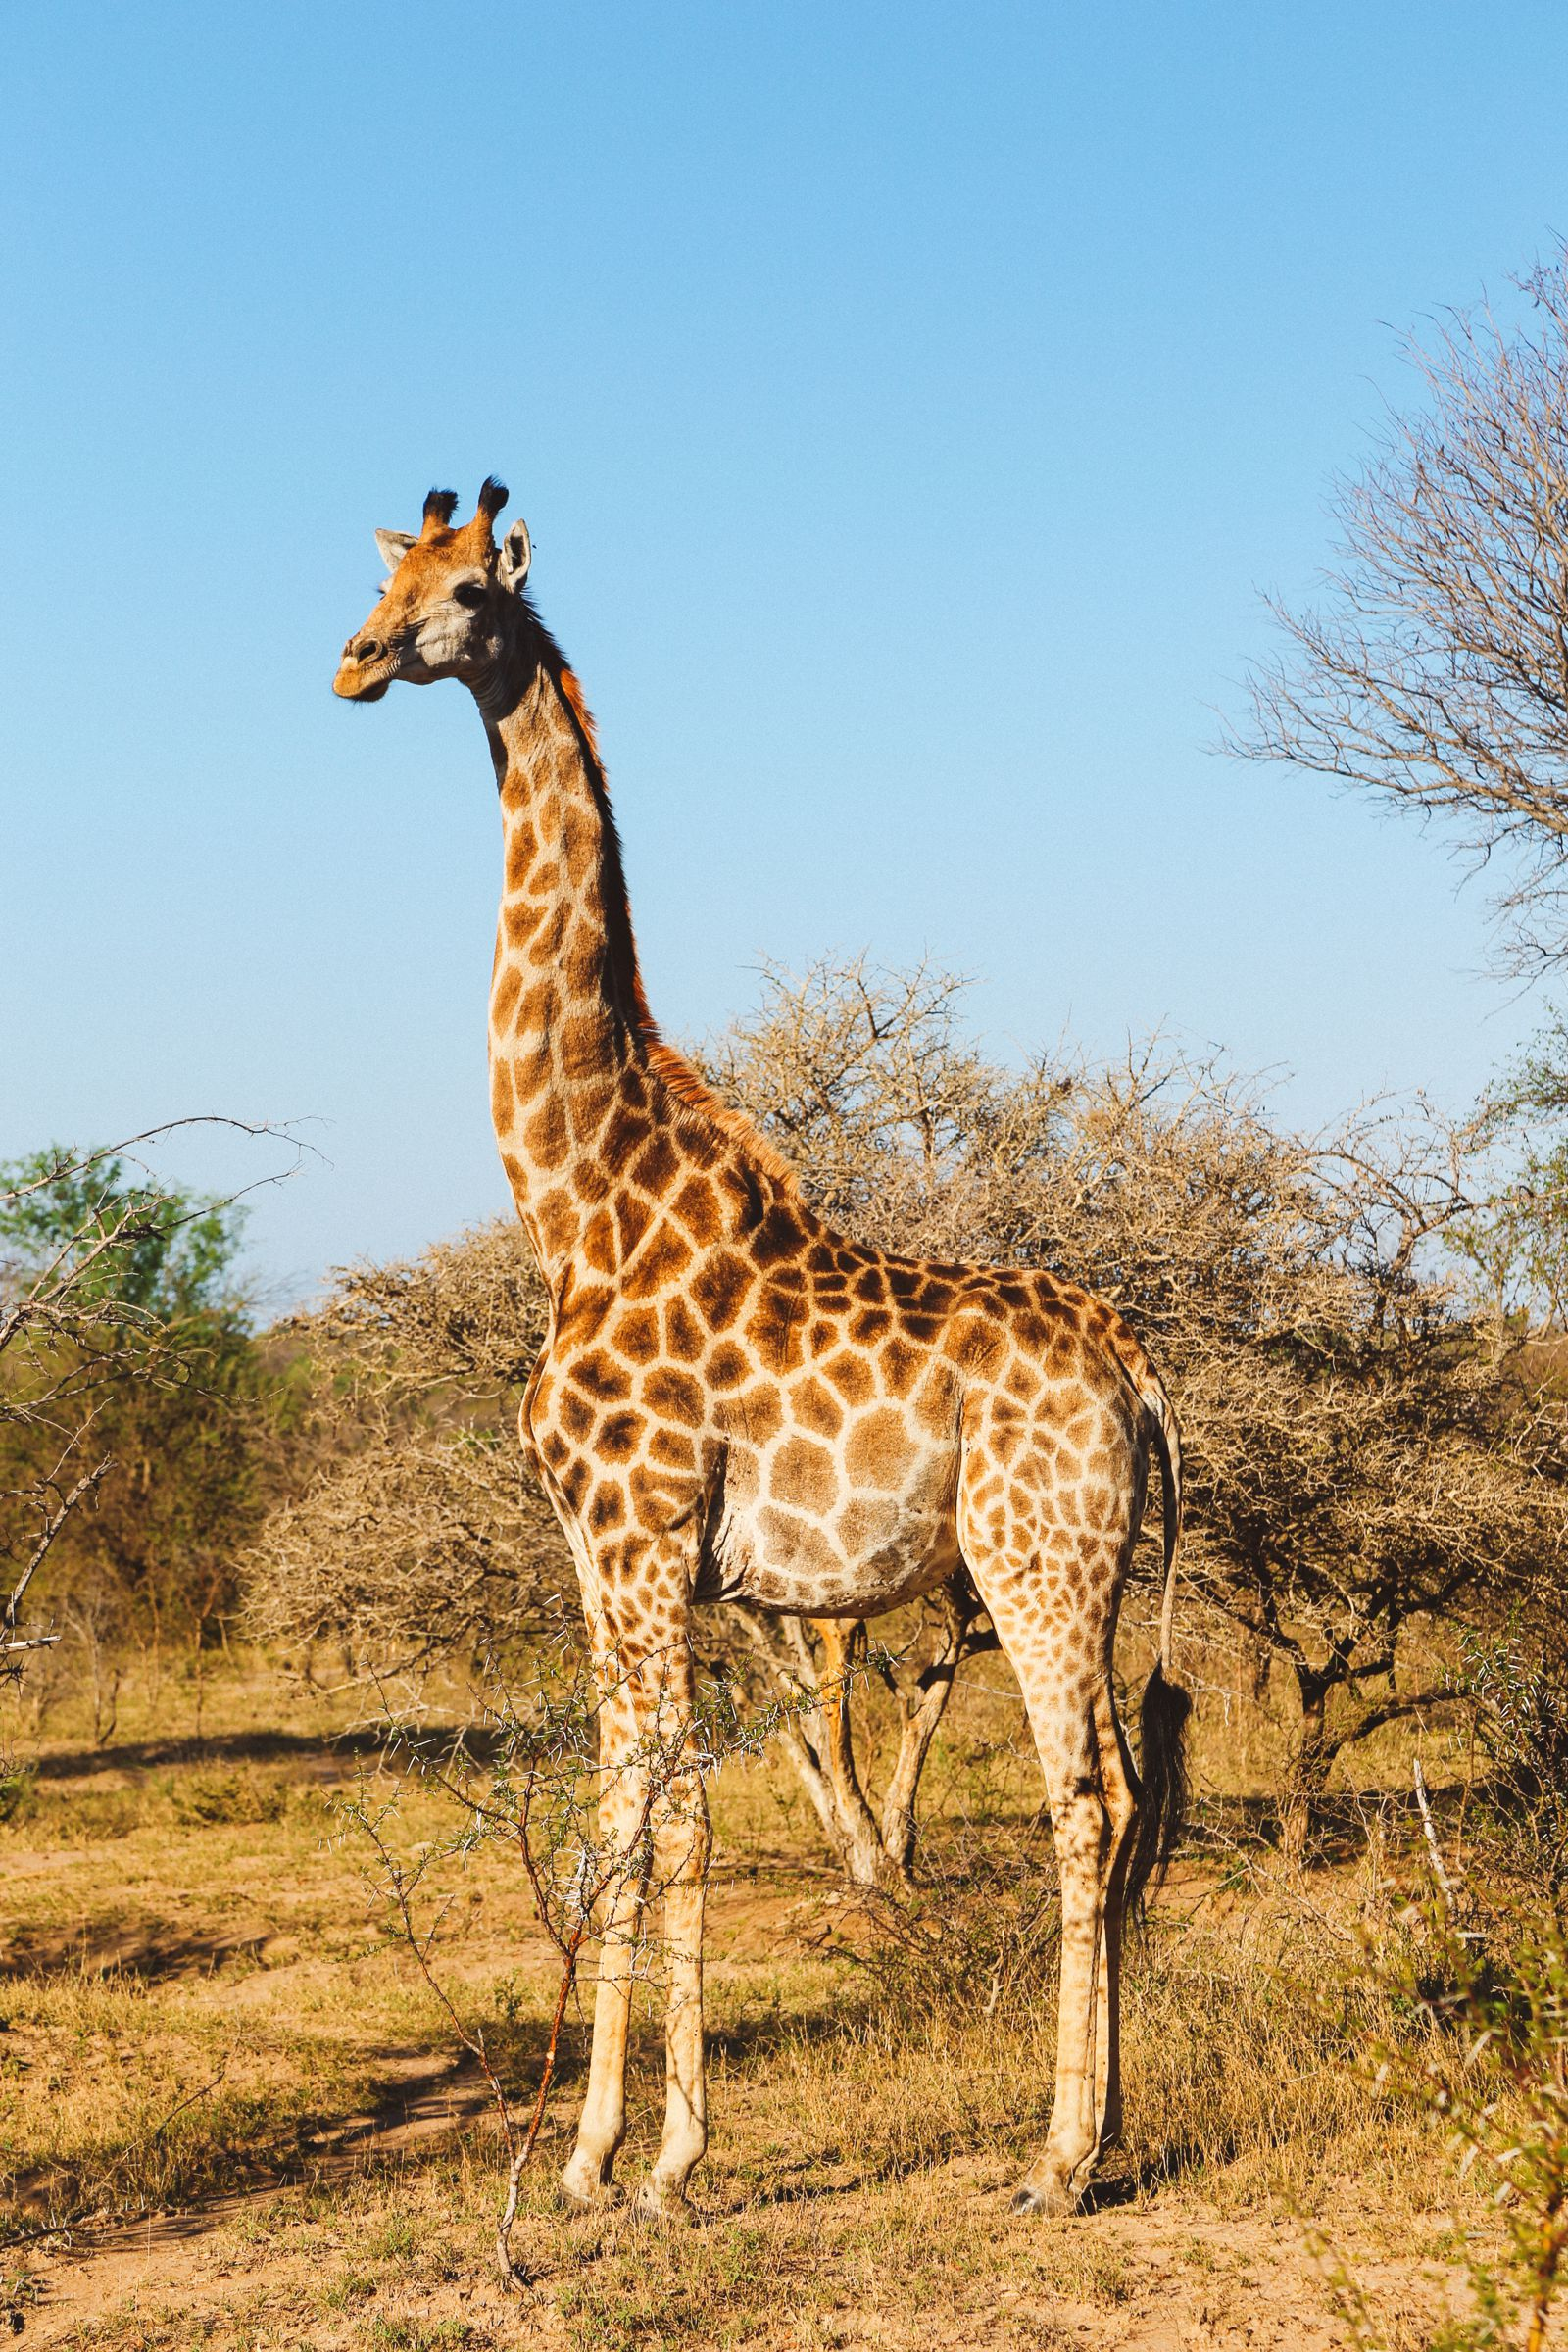 Midnight Lions, Skittish Giraffes And The Deadliest Of The Safari Big 5 In South Africa (41)